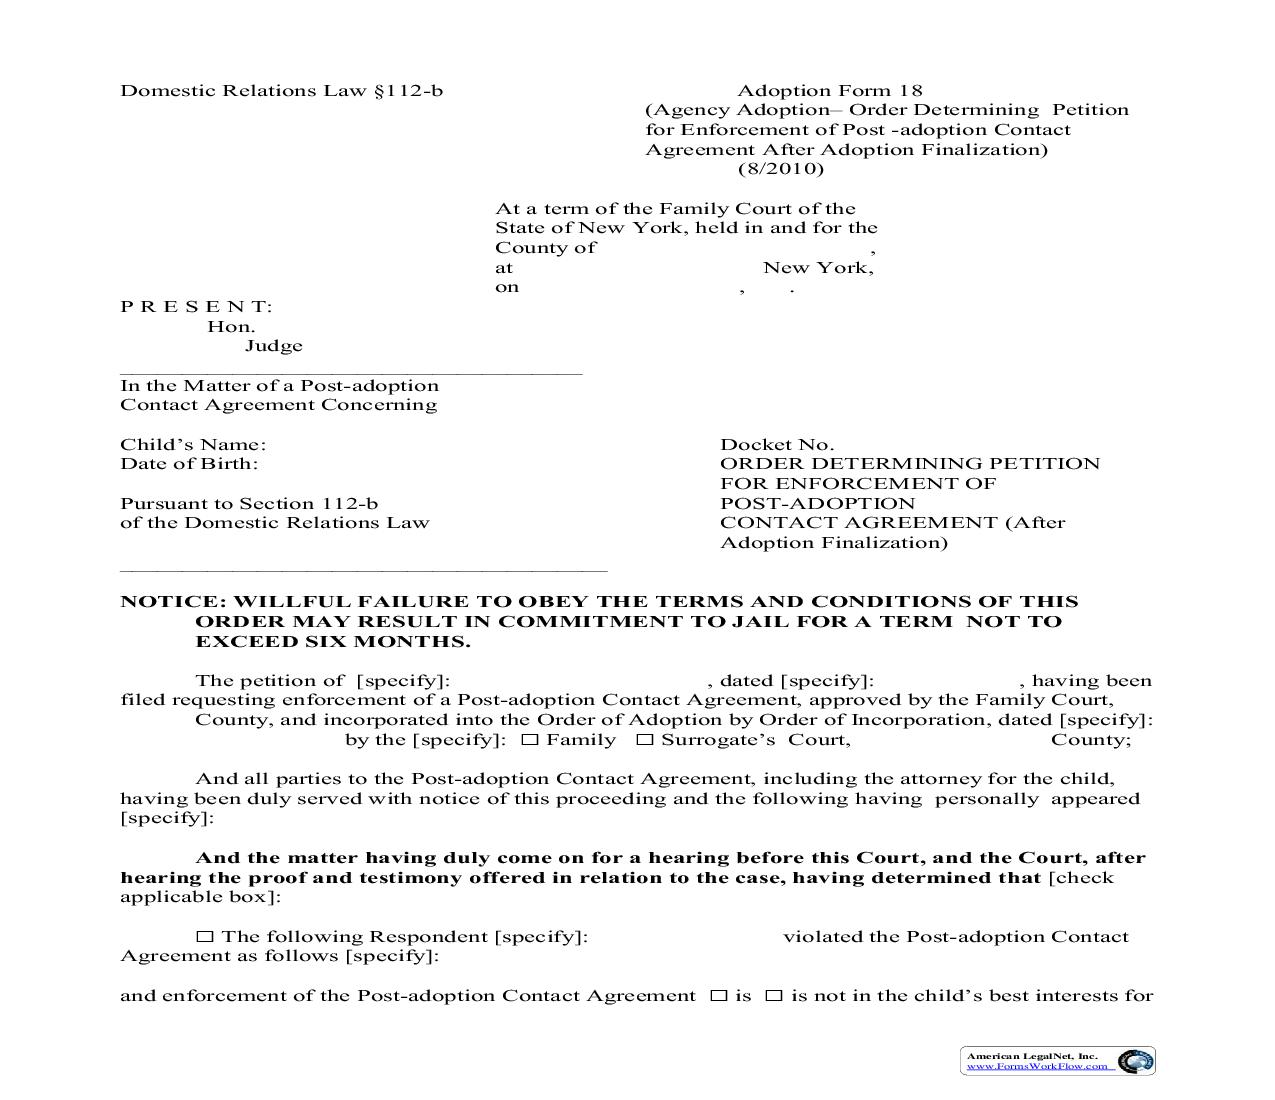 Order Determing Petition For Enforcement Of Post-Adoption Contact Agreement (After Finalization) {18}   Pdf Fpdf Doc Docx   New York